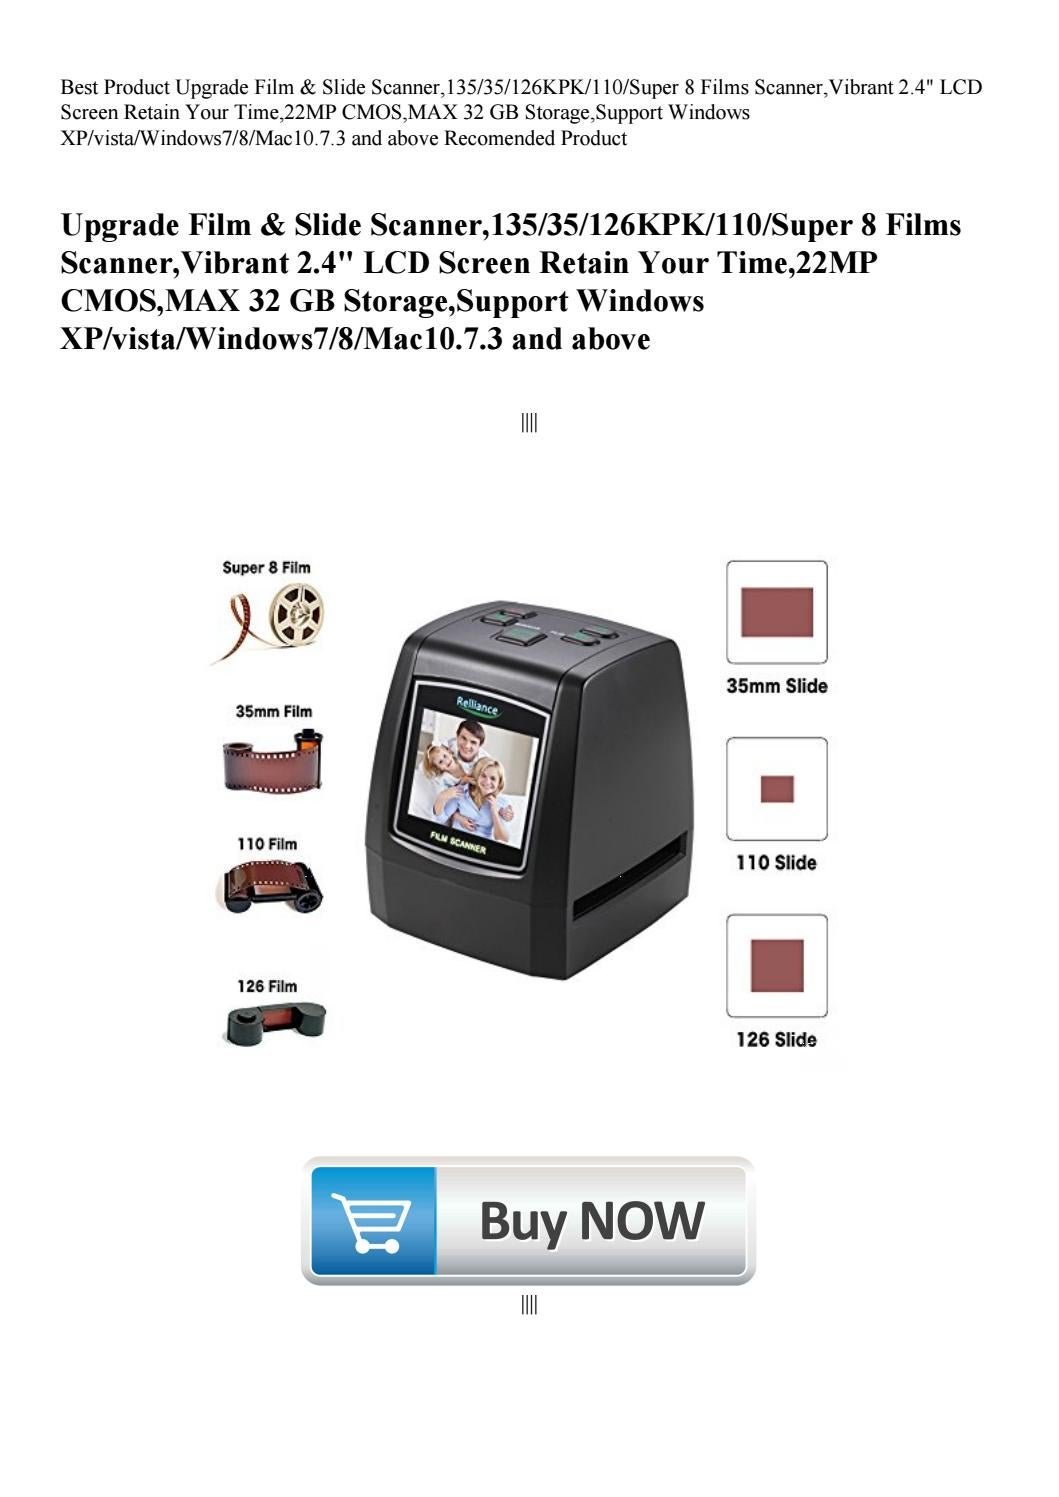 Best Product Upgrade Film & Slide Scanner